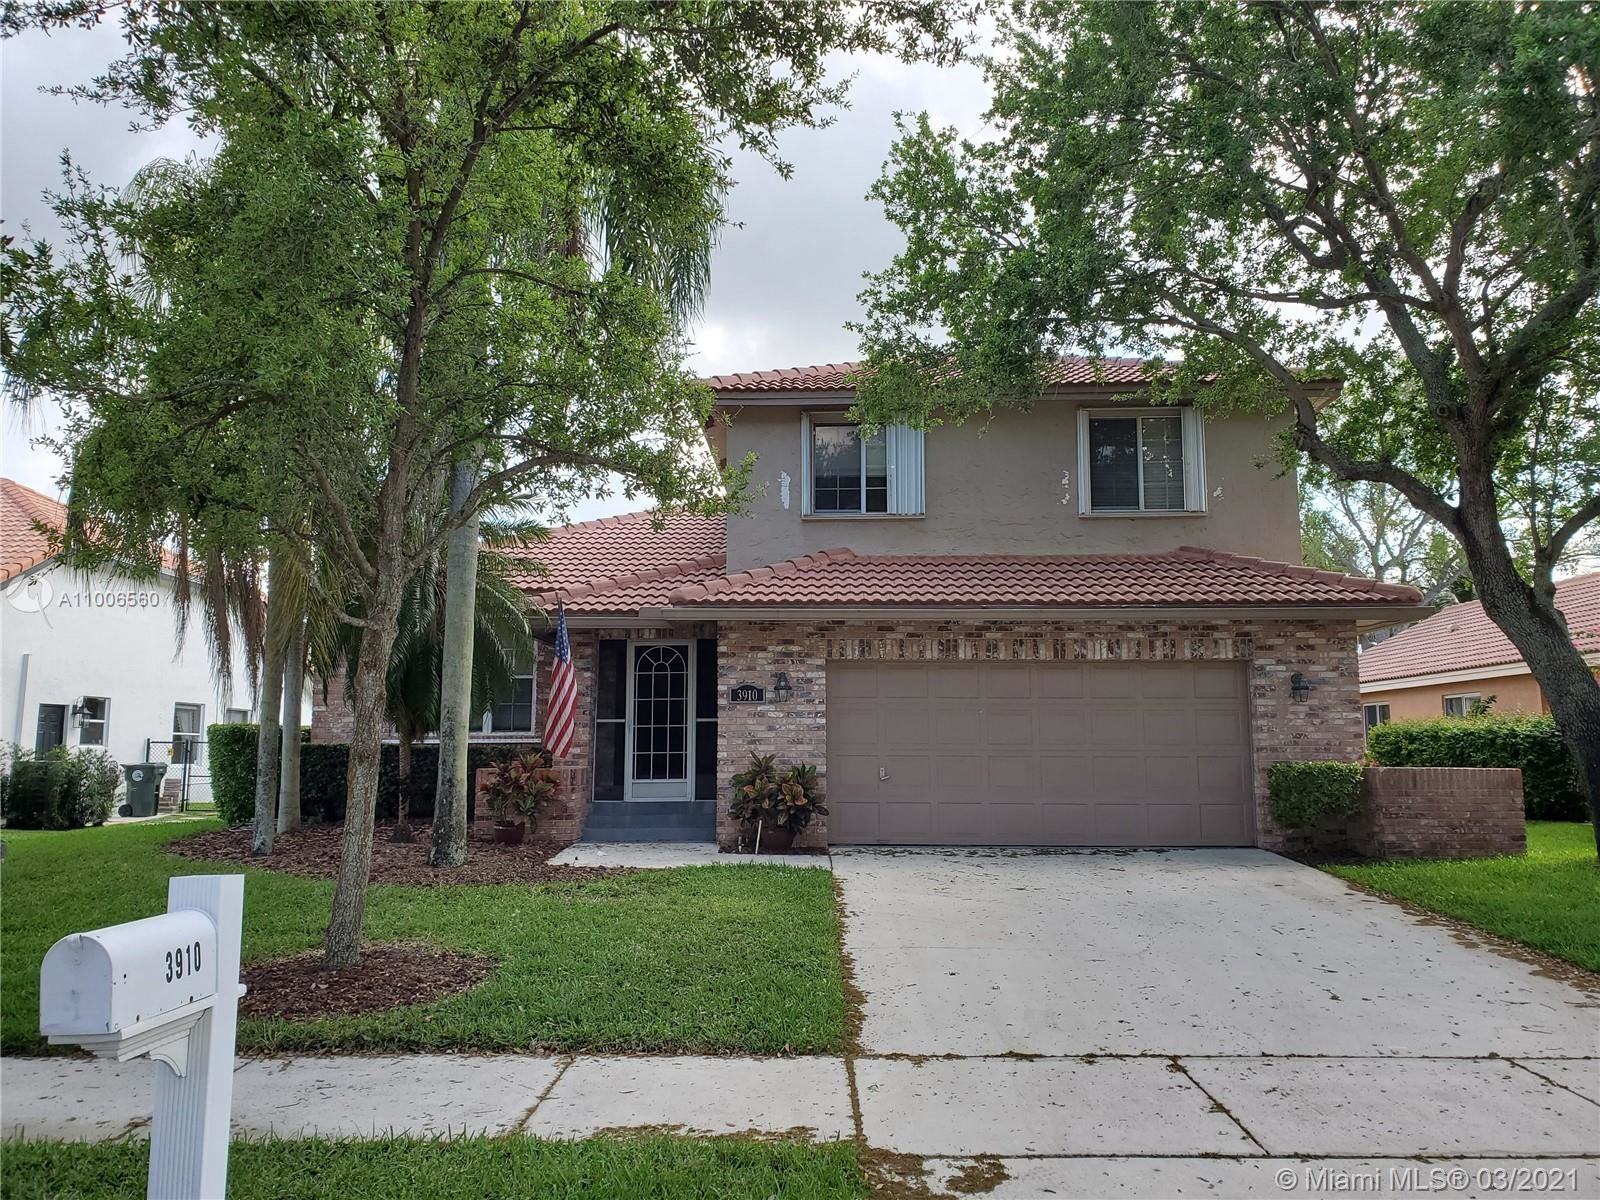 Photo of 3910 NW 54th Ct, Coconut Creek, FL 33073 (MLS # A11006560)